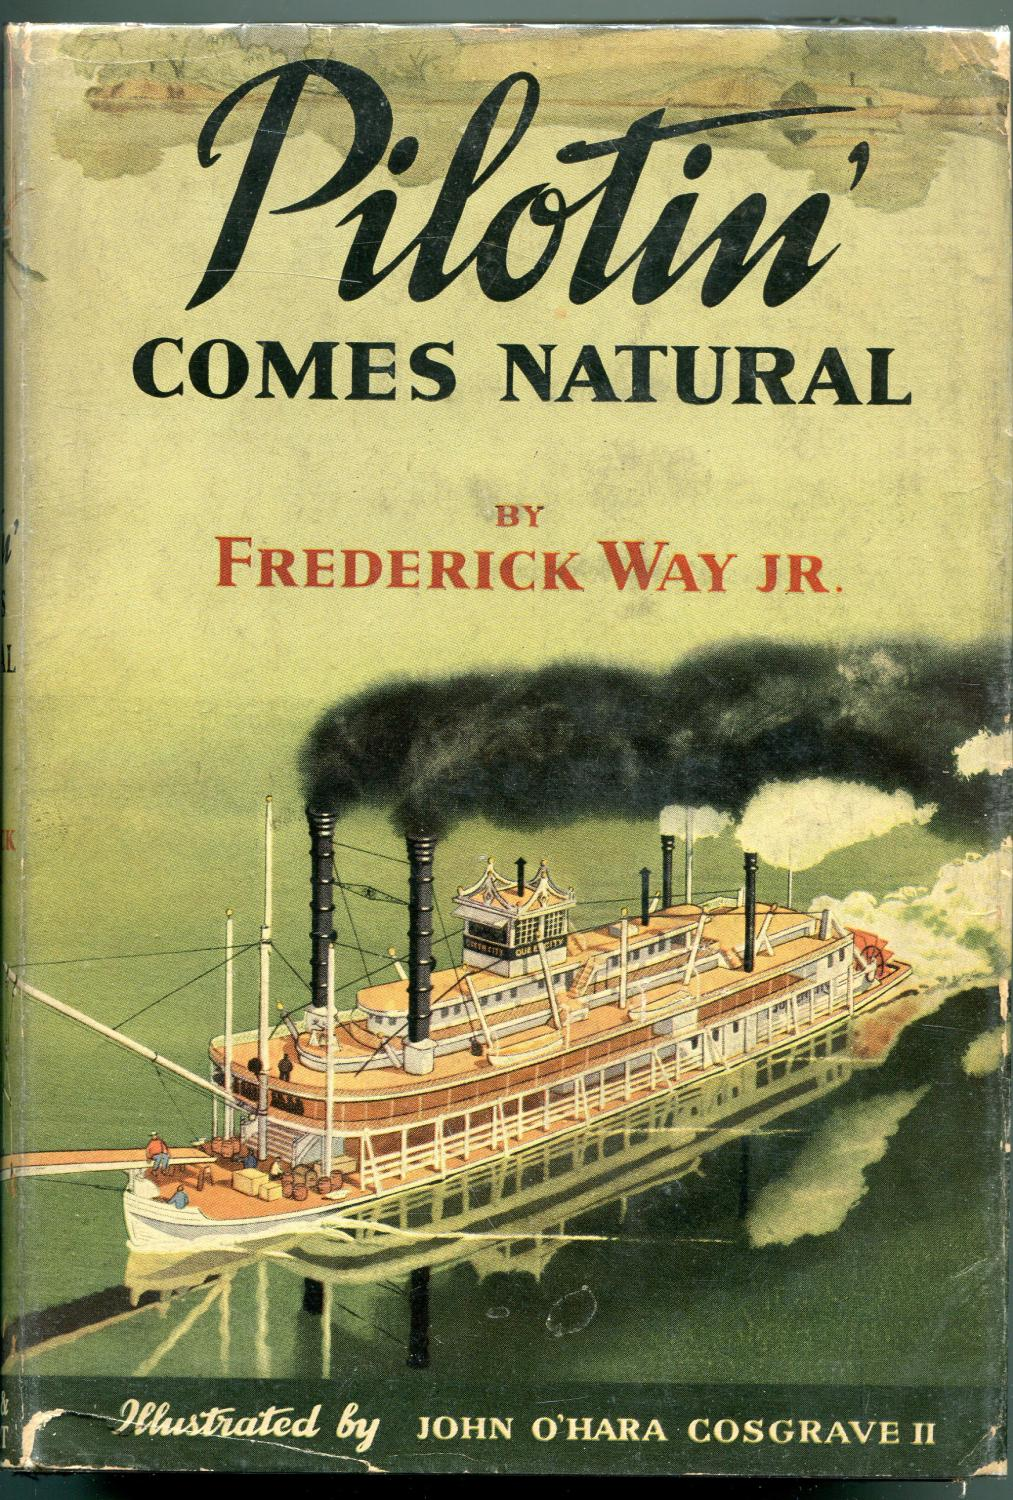 Pilotin' Comes Natural: Frederick Way Jr